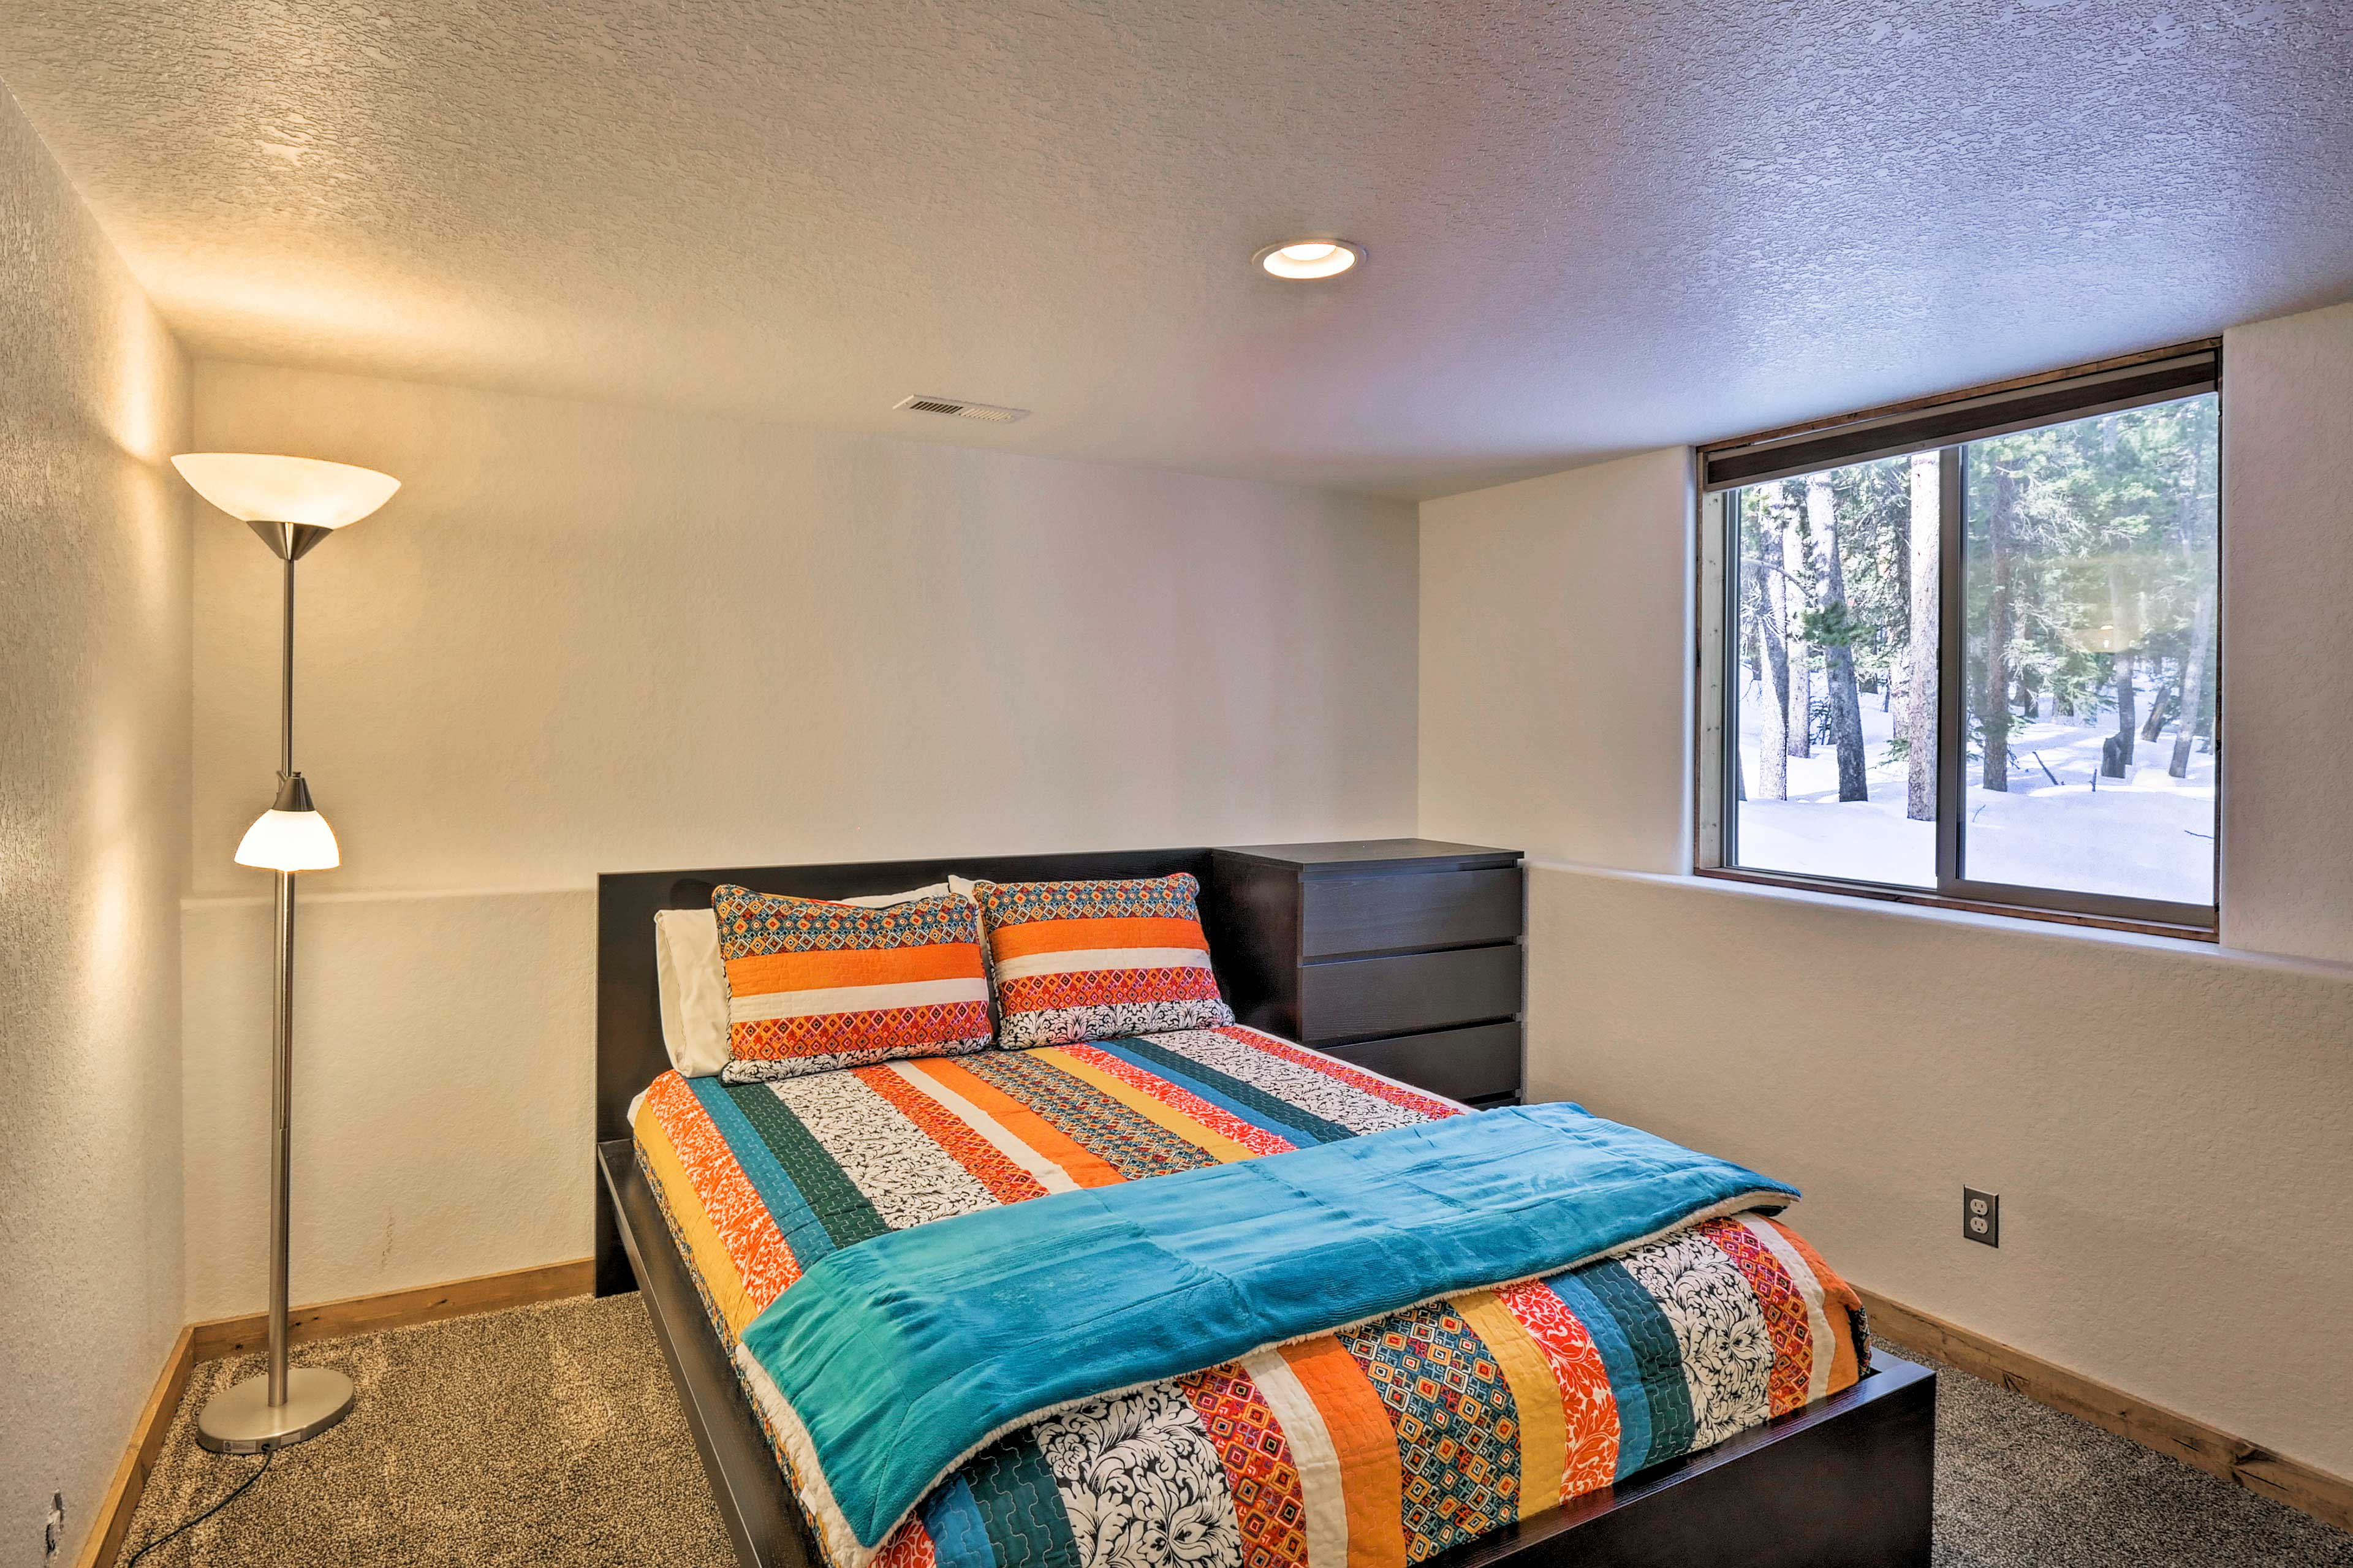 The downstairs bedroom includes a queen bed.